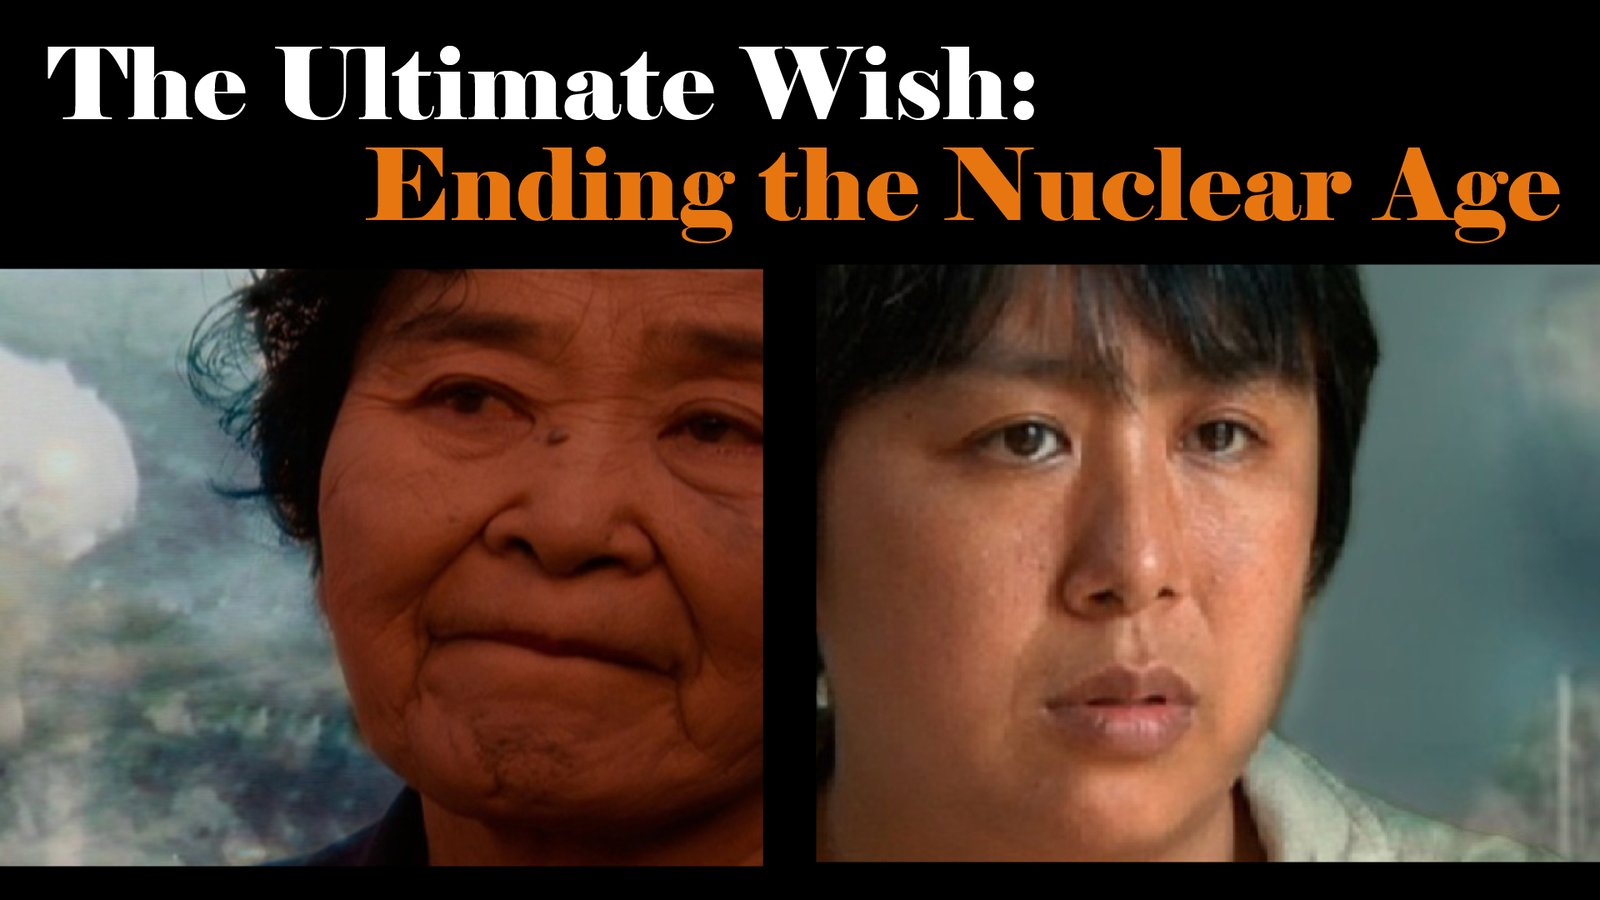 The Ultimate Wish: Ending the Nuclear Age